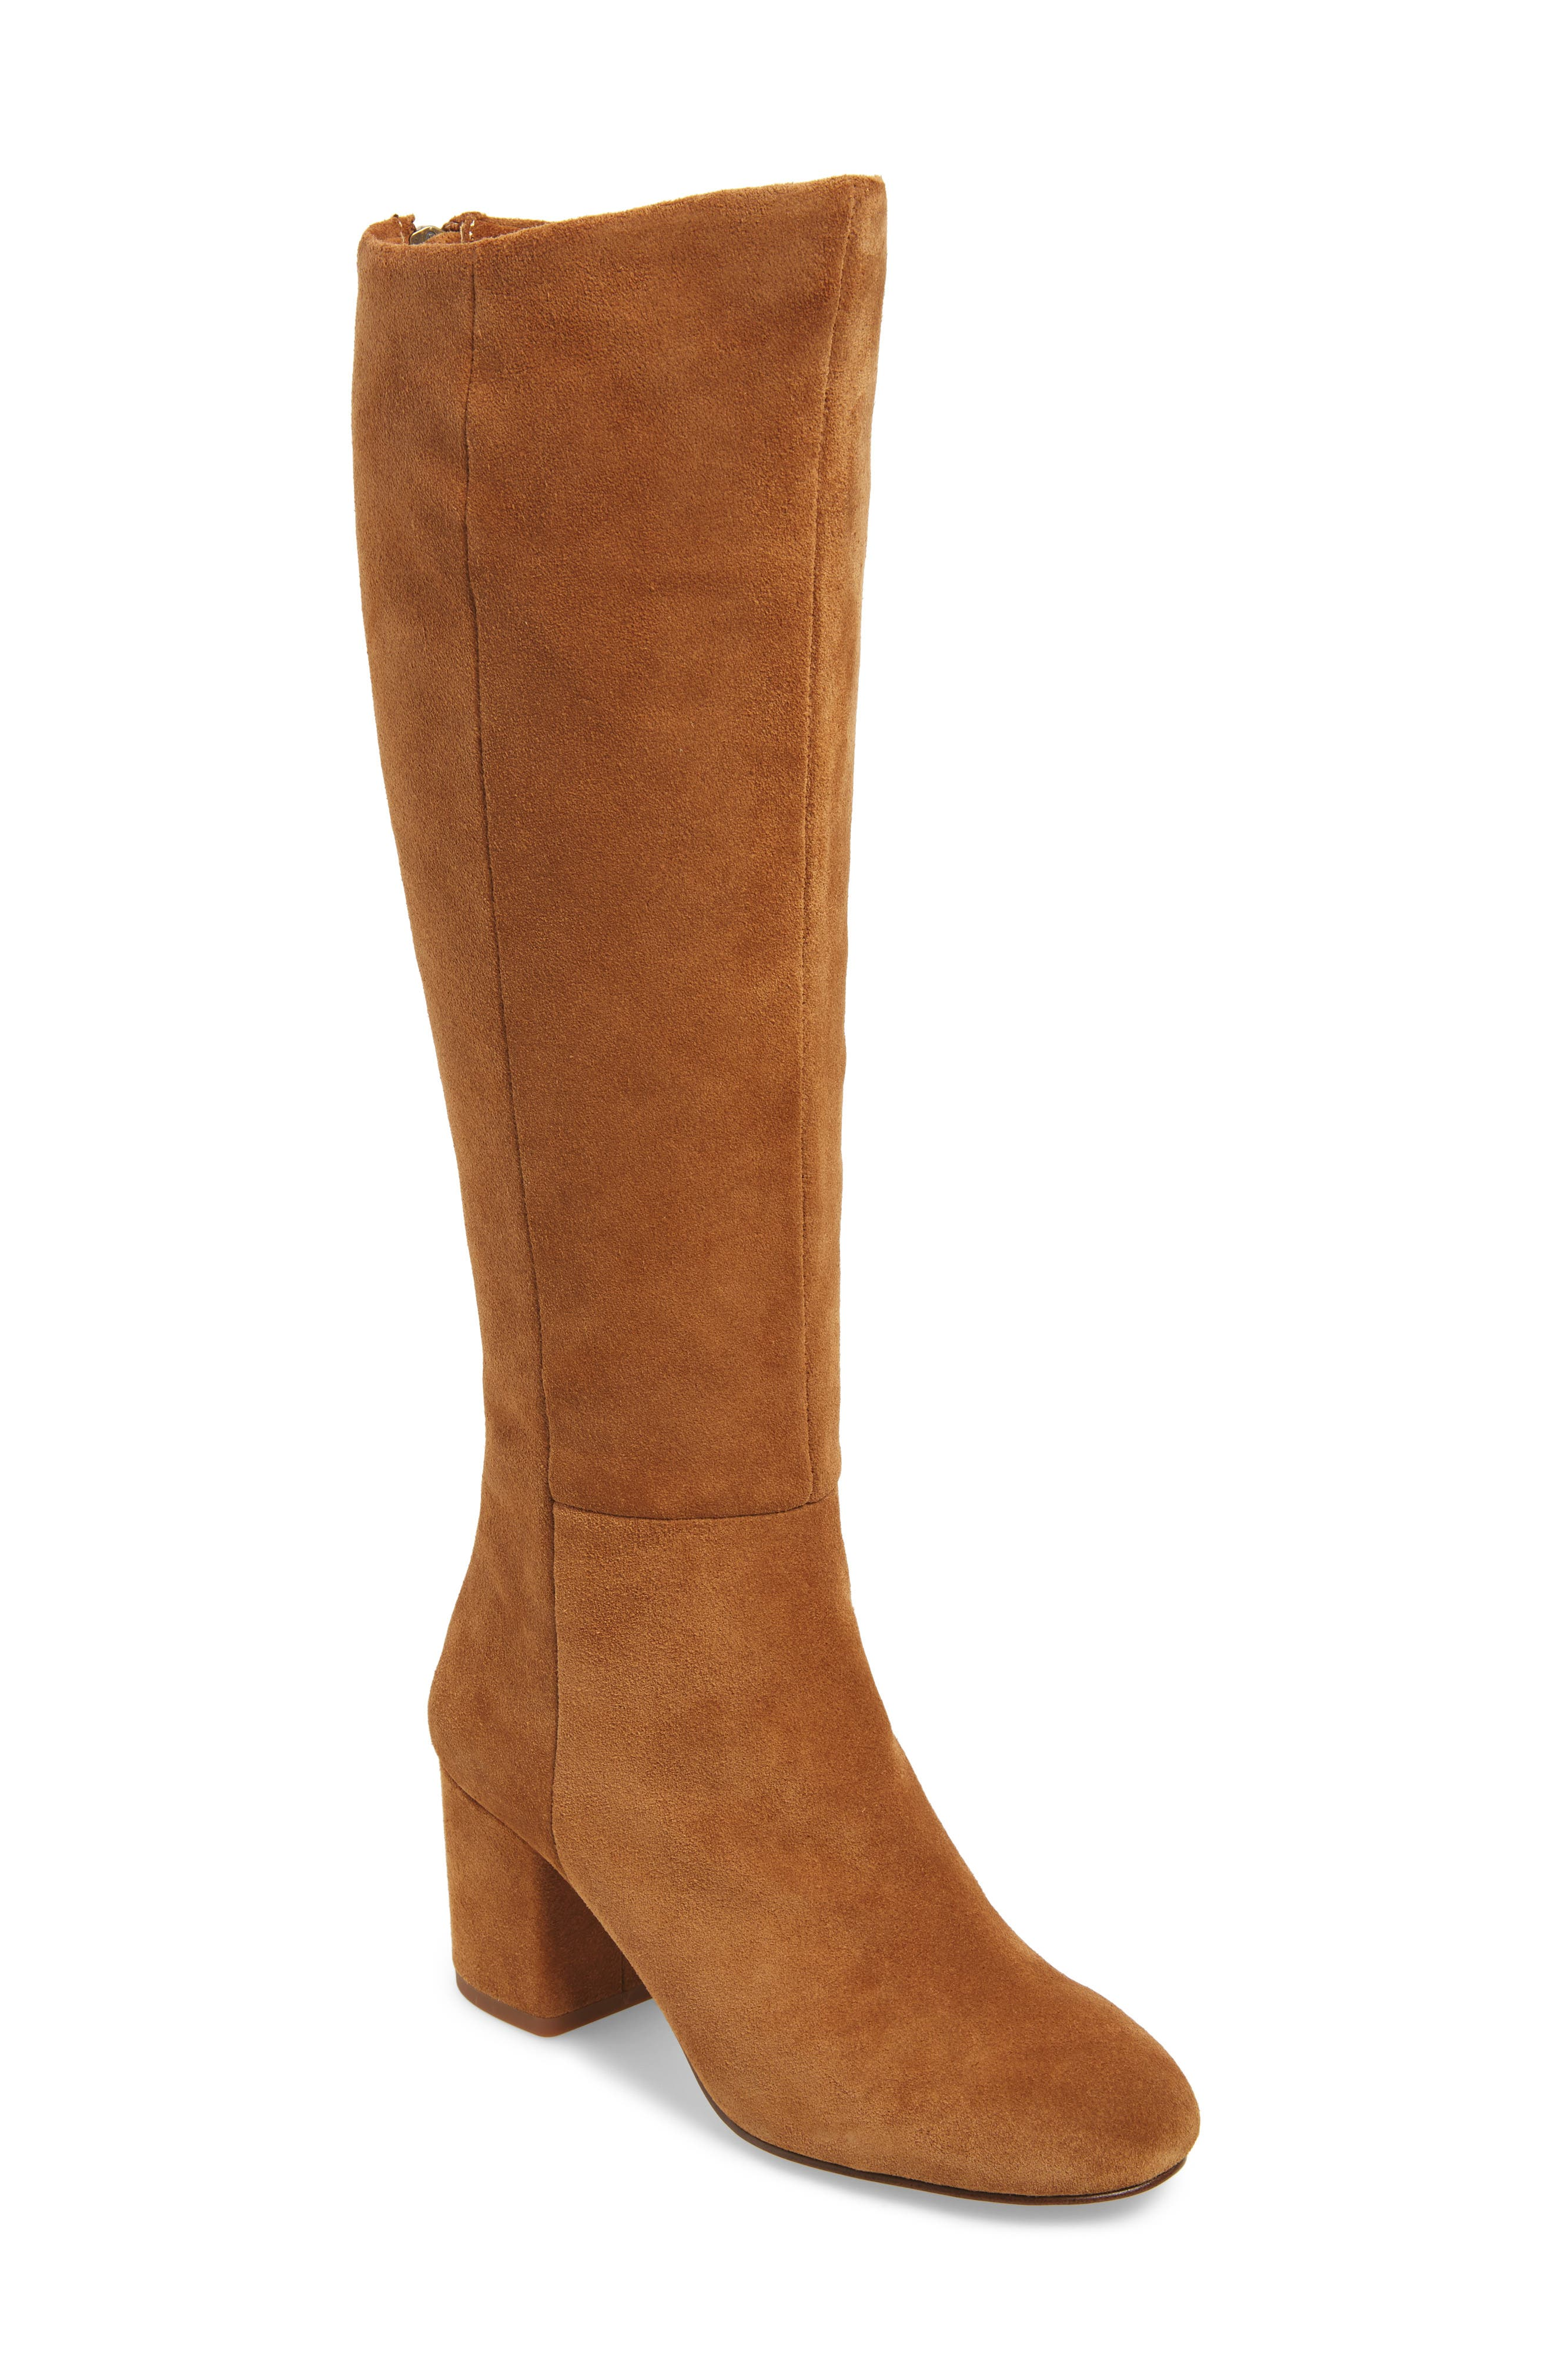 Danise Knee High Boot,                         Main,                         color, Chestnut Suede